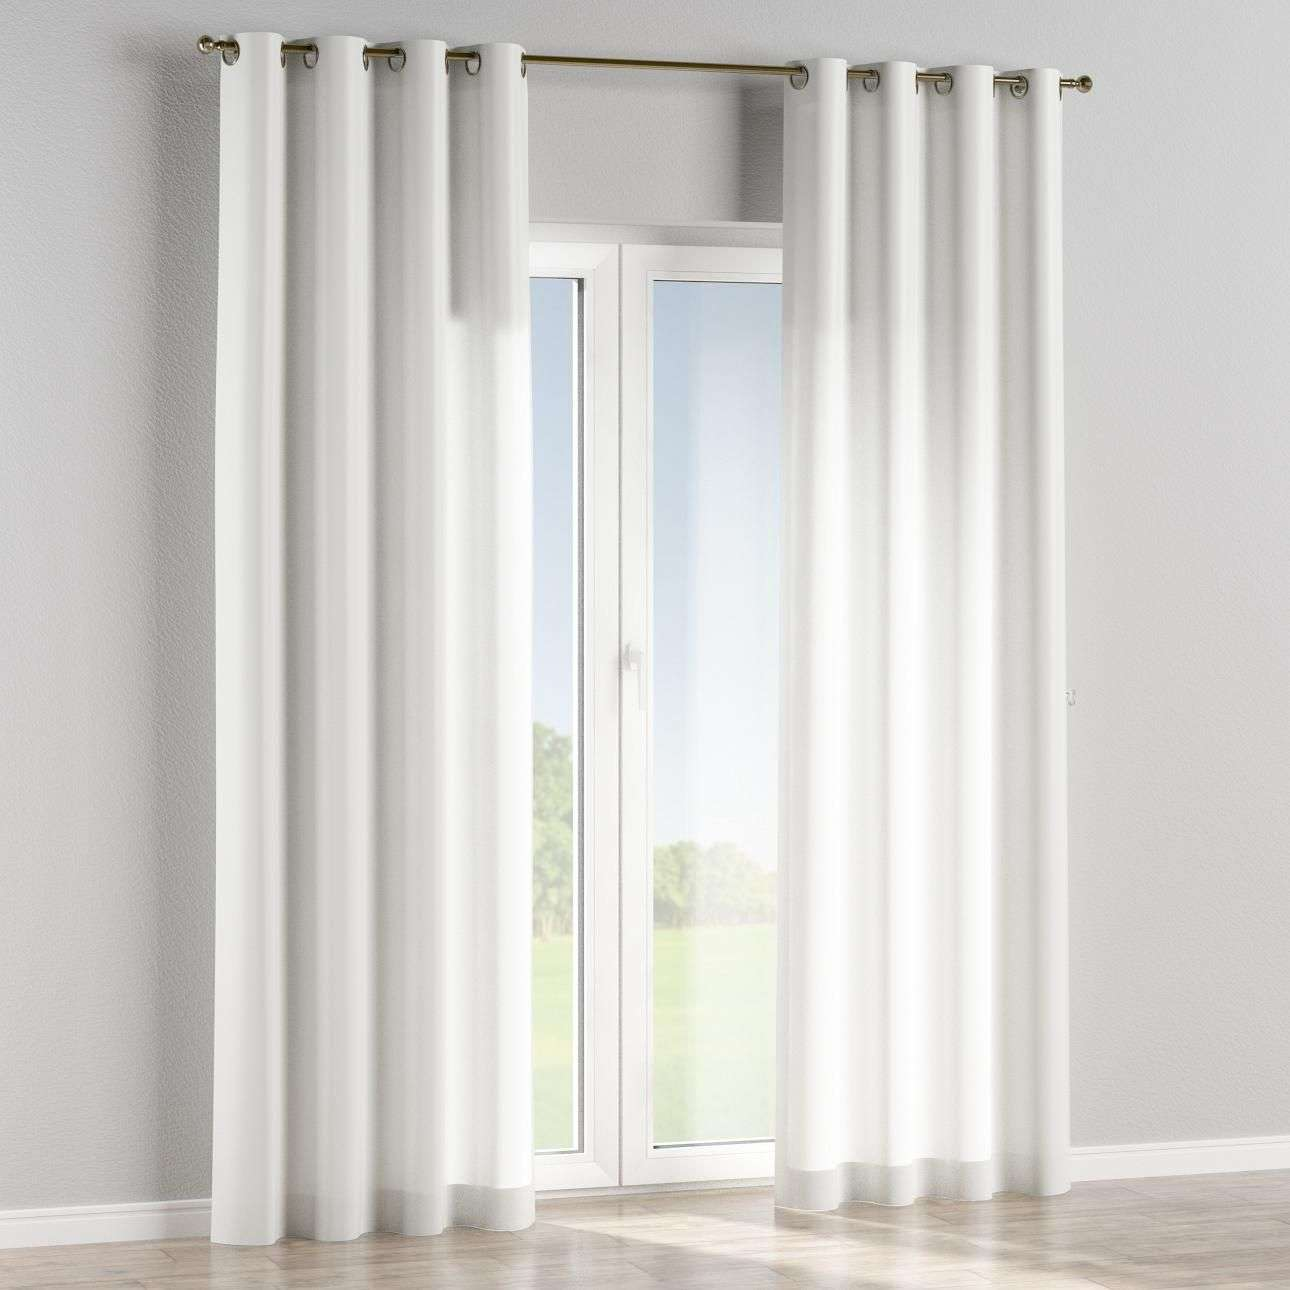 Eyelet curtains in collection SALE, fabric: 136-21